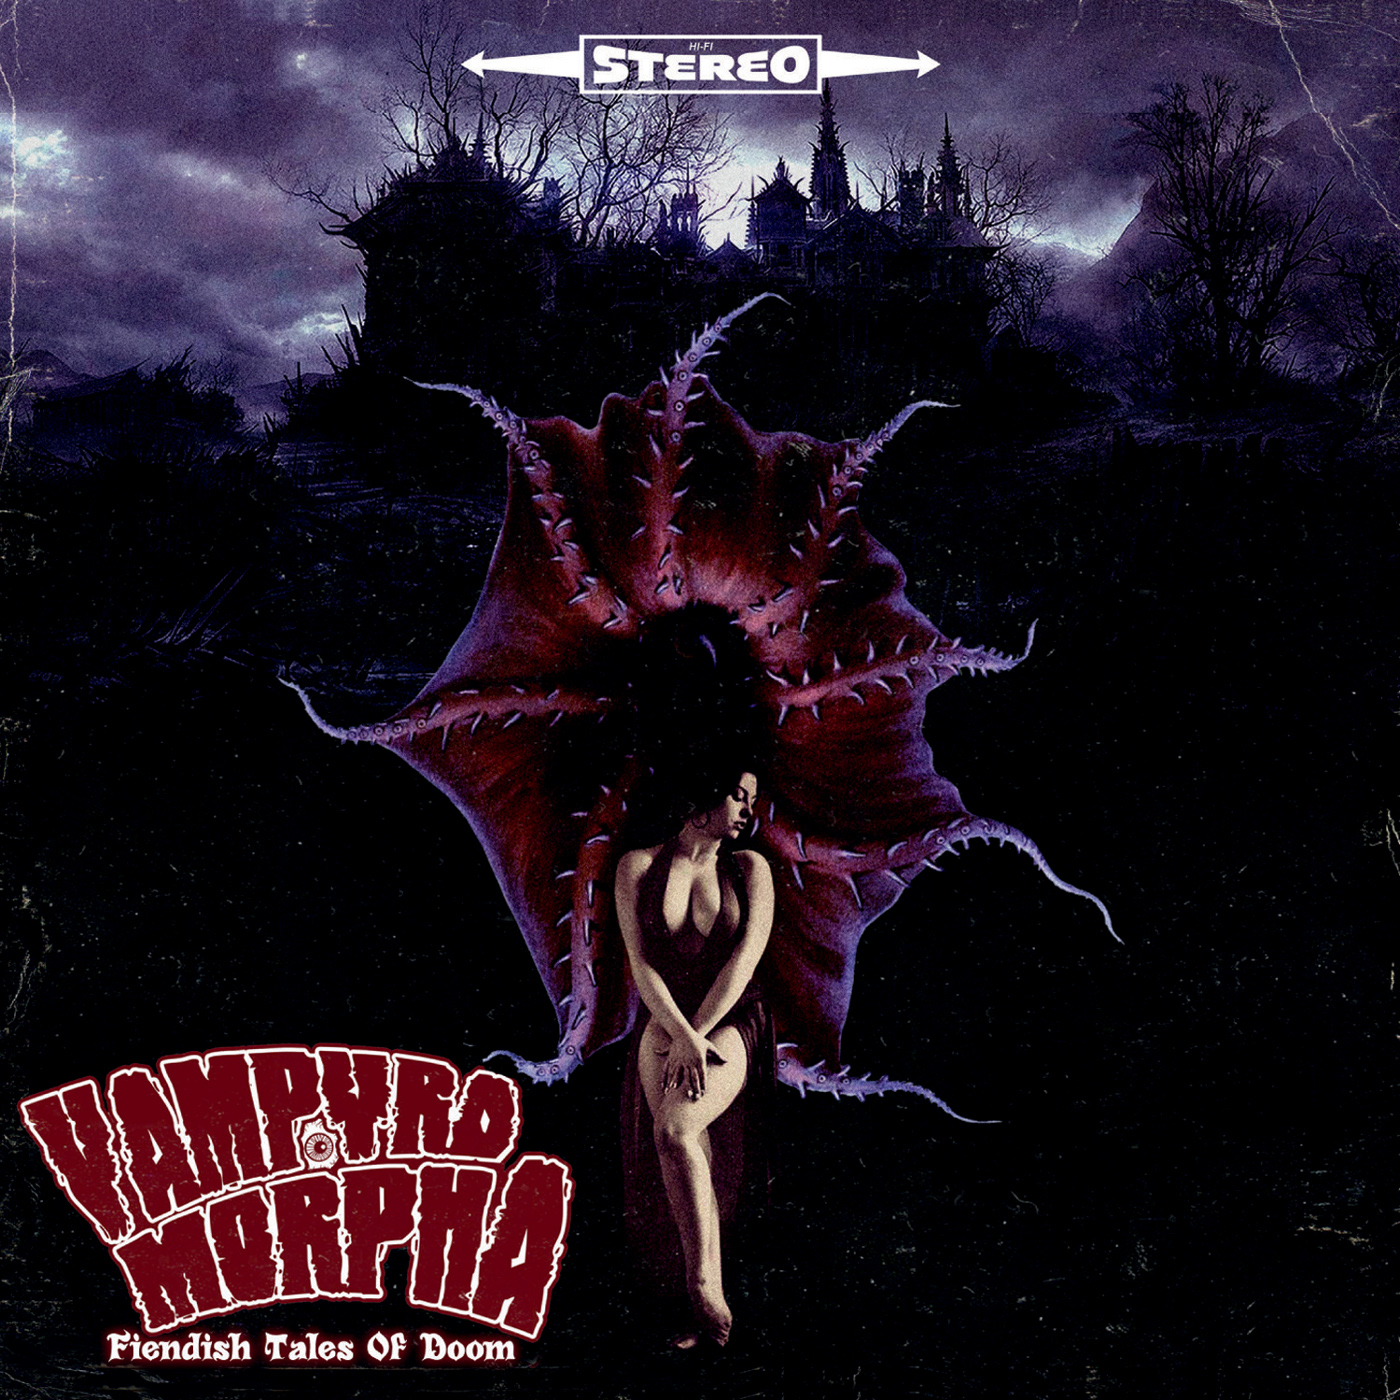 Vampyromorpha – Fiendish Tales Of Doom